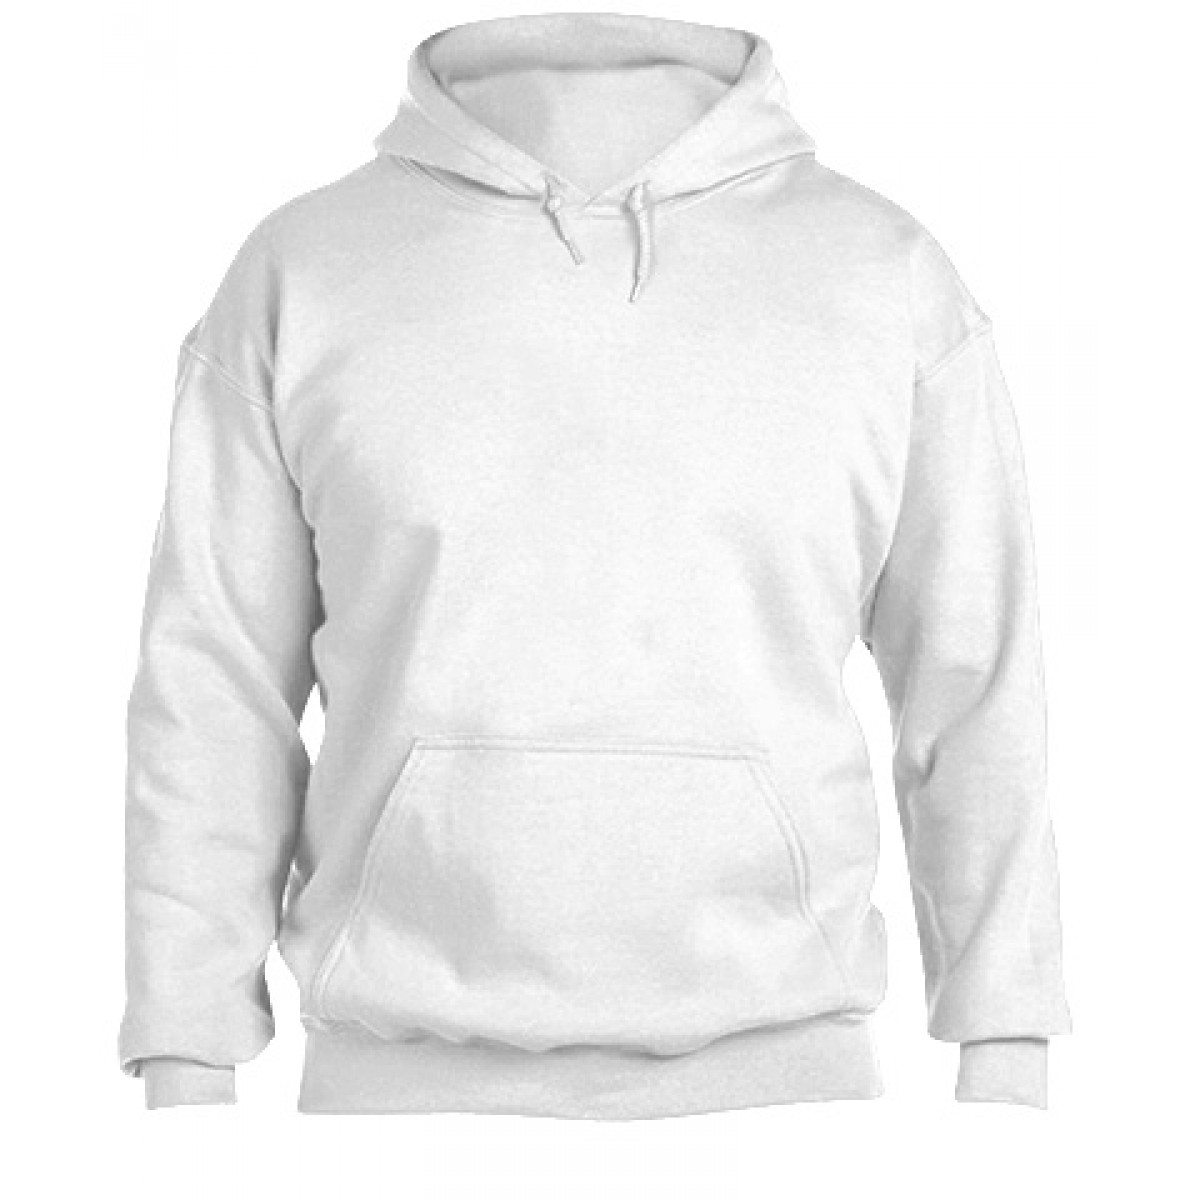 Hooded Sweatshirt 50/50 Heavy Blend-White-S